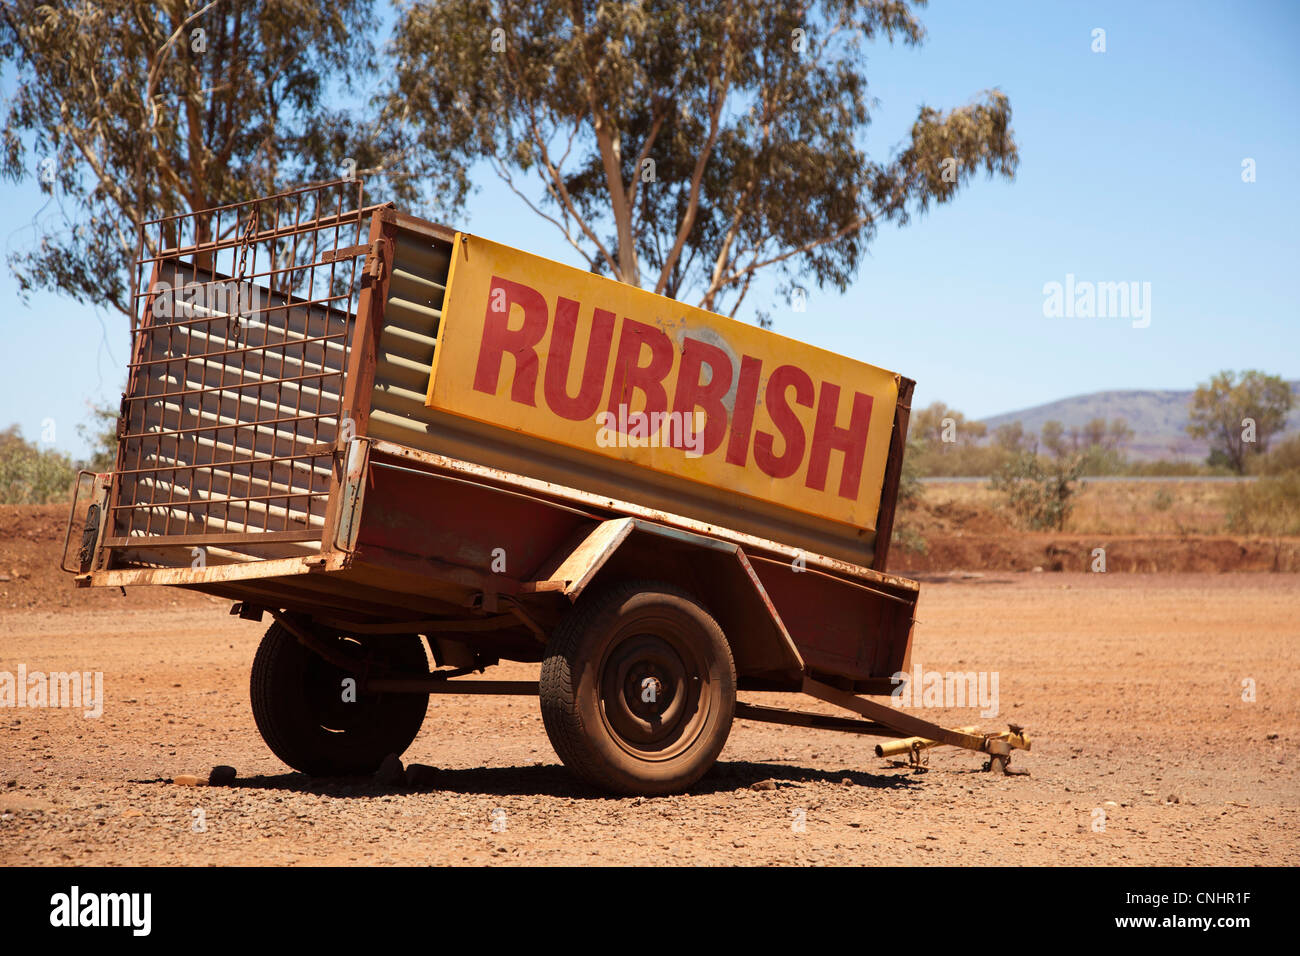 A vehicle trailer with the word Rubbish on it - Stock Image